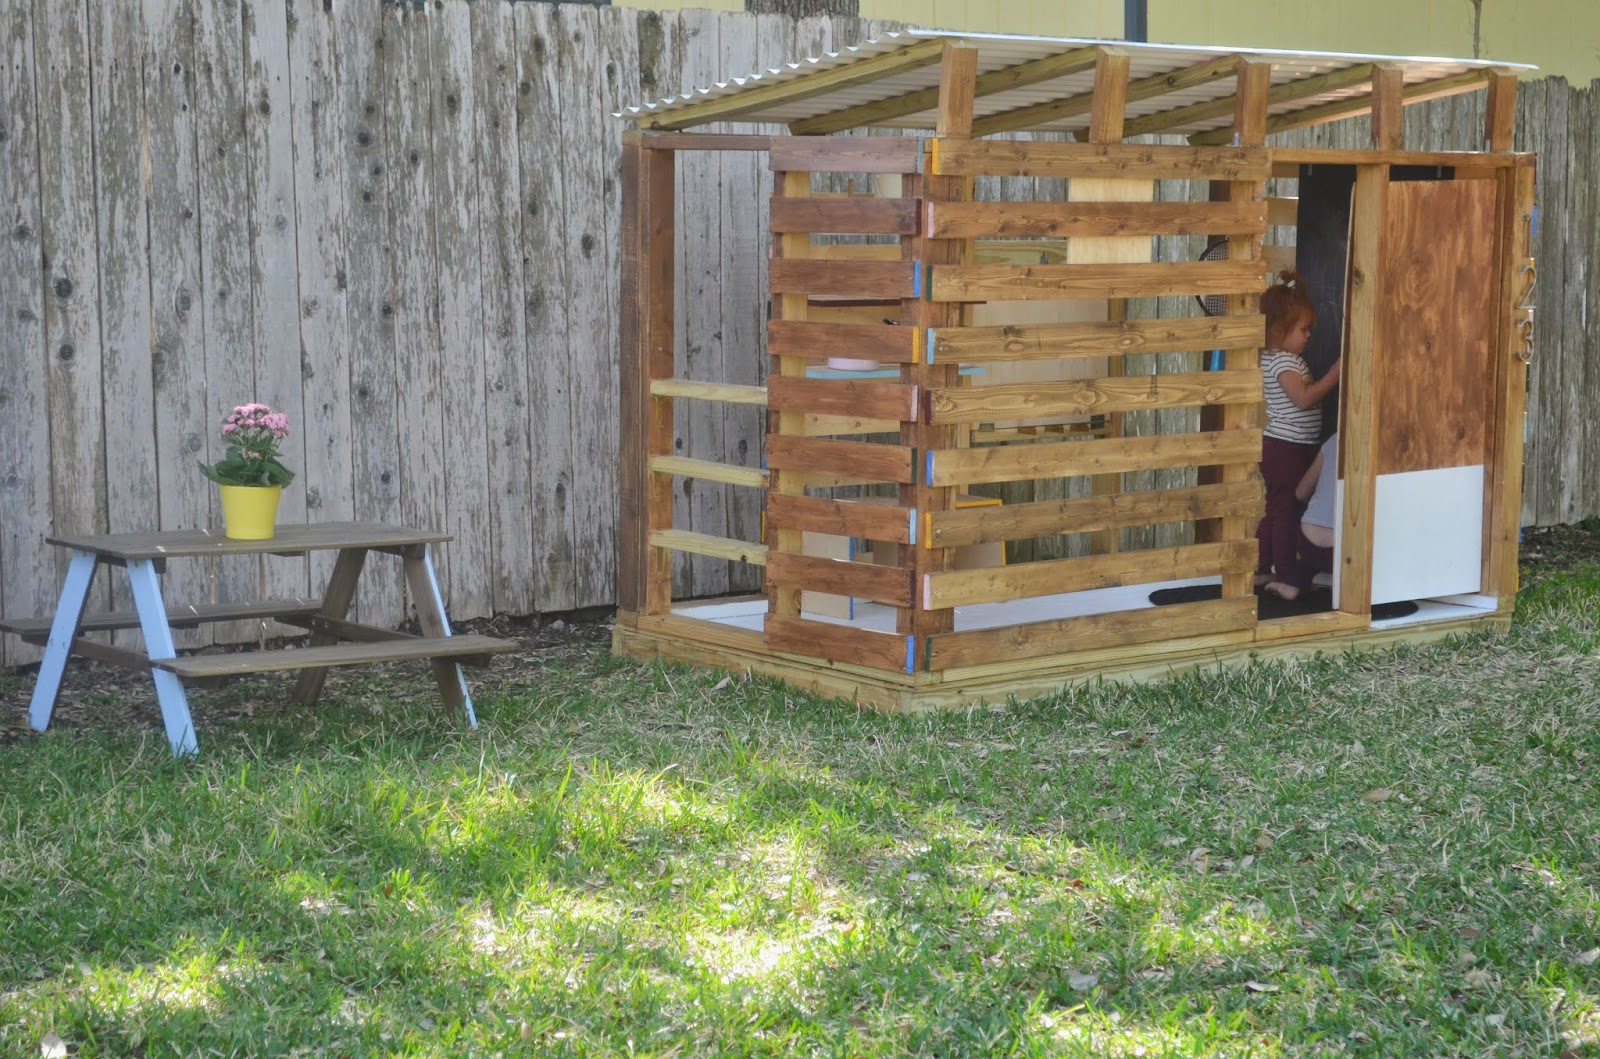 Diy Playhouse With Diy Playhouse Latest Recycled Pallet